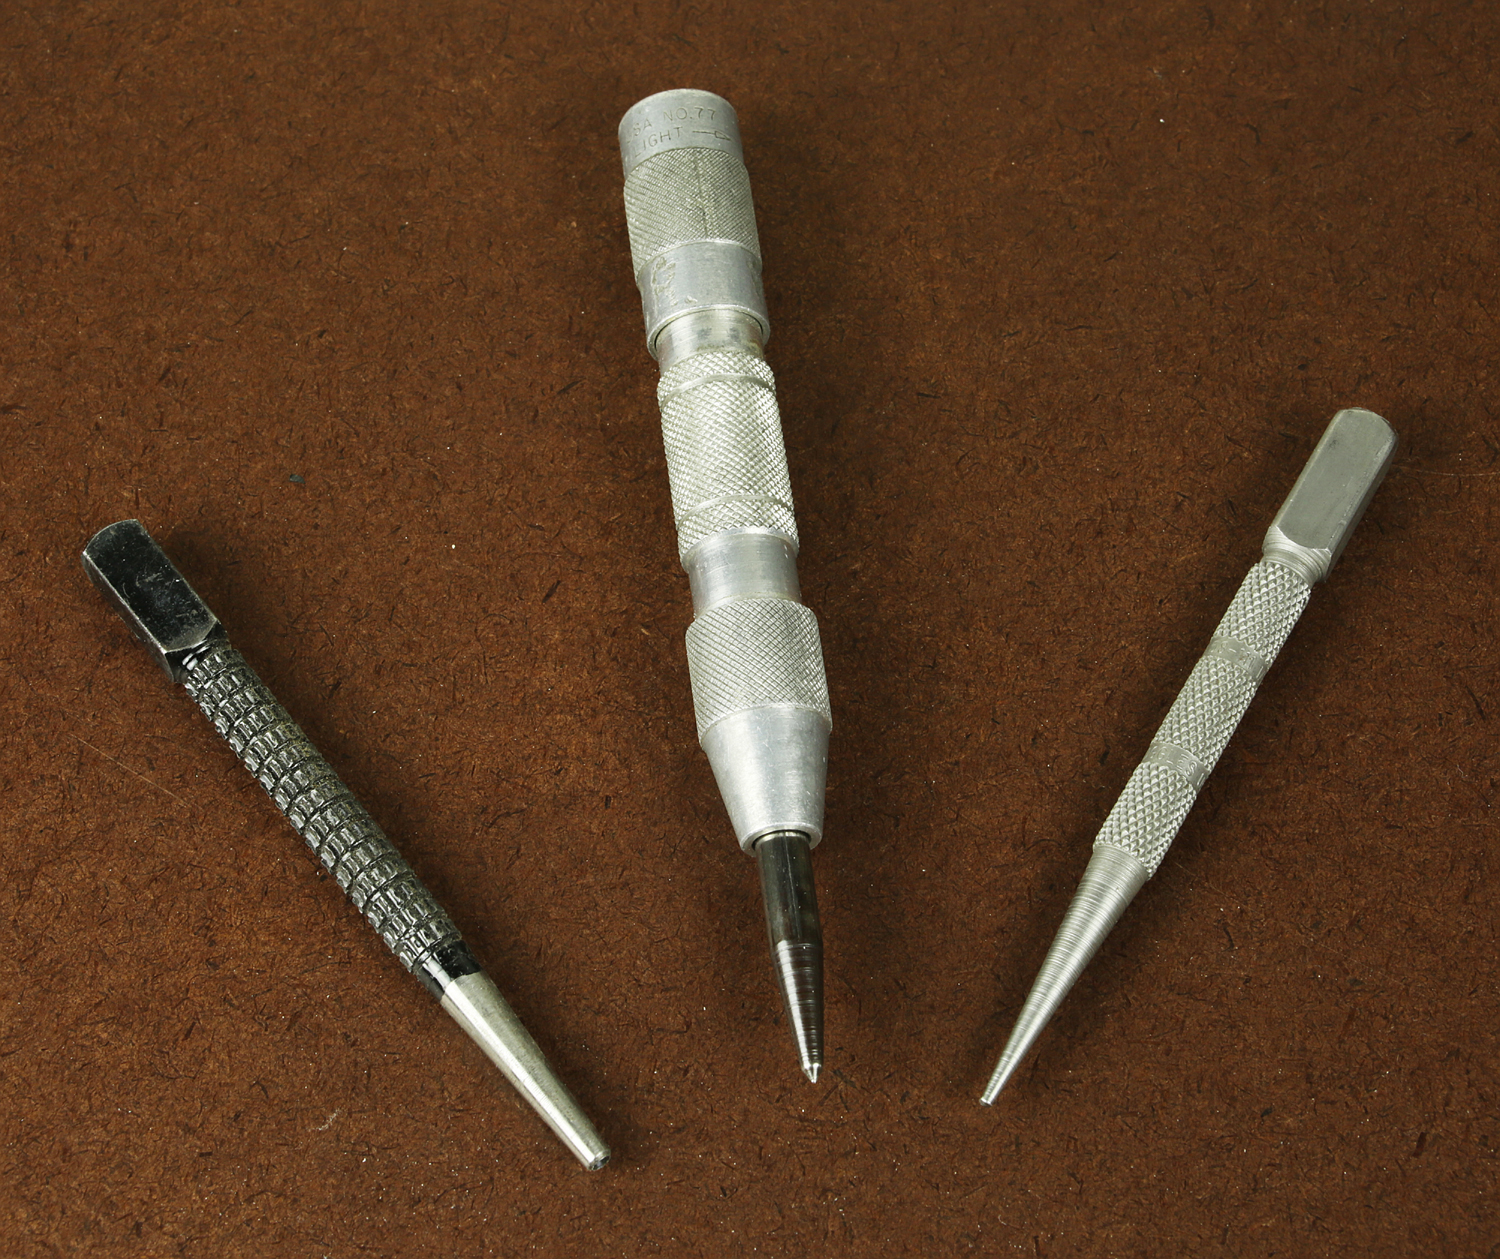 Figure 10. A nail set, a center punch, and another nail set.